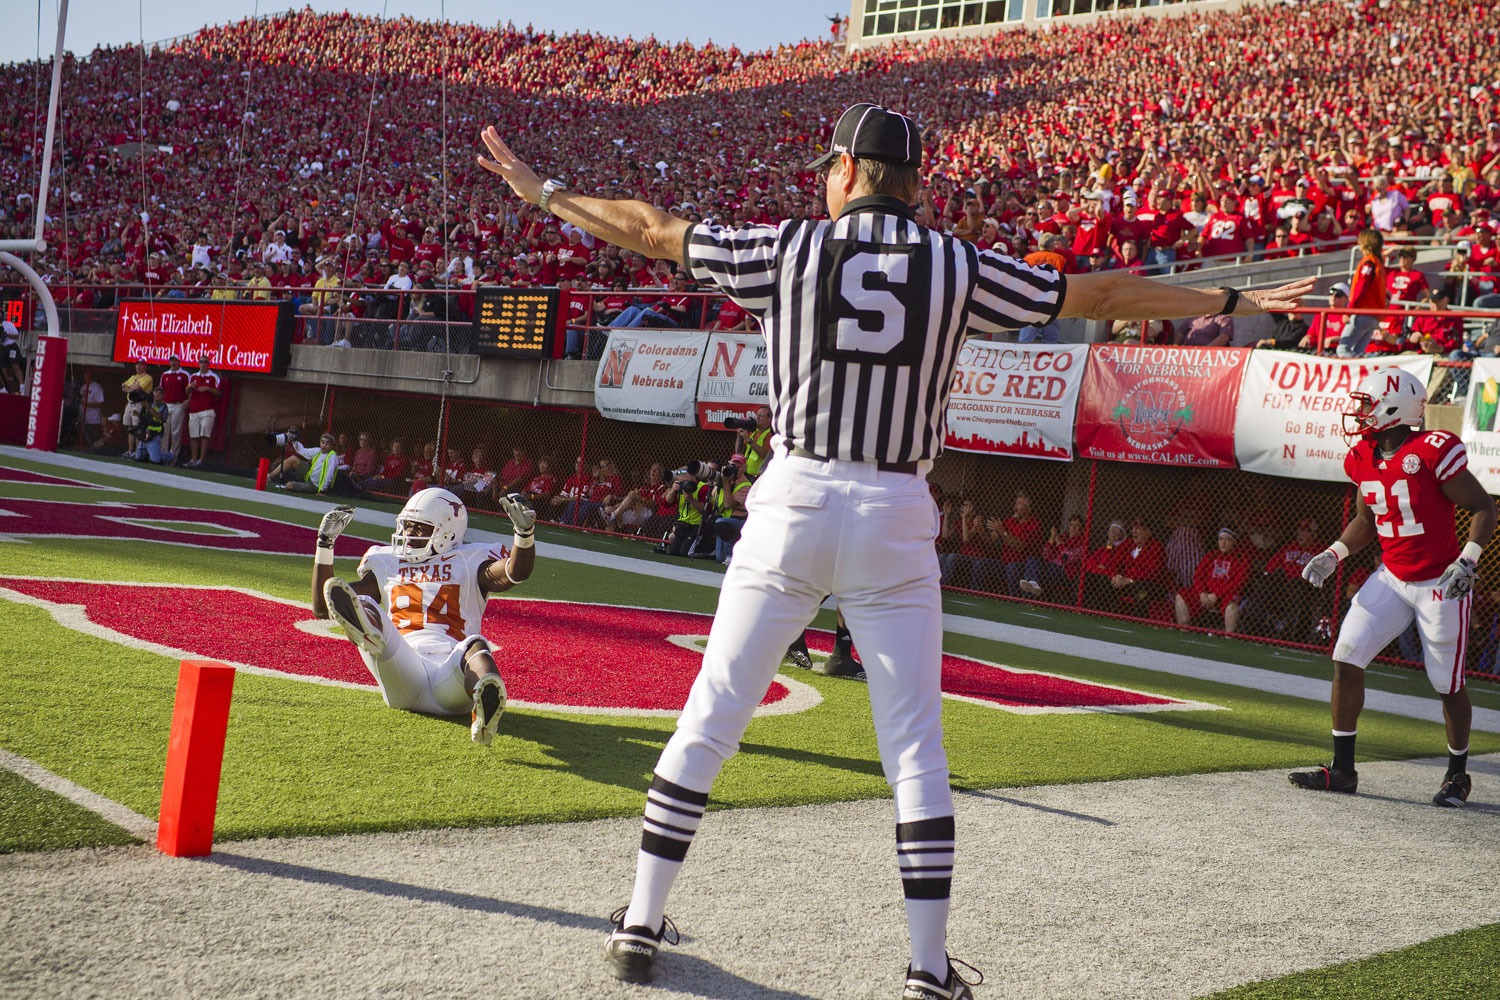 Husker cornerback Prince Amukarmara looks stunned as a penalty flag comes in from the far side of the field during an October 2010 game against the University of Texas.